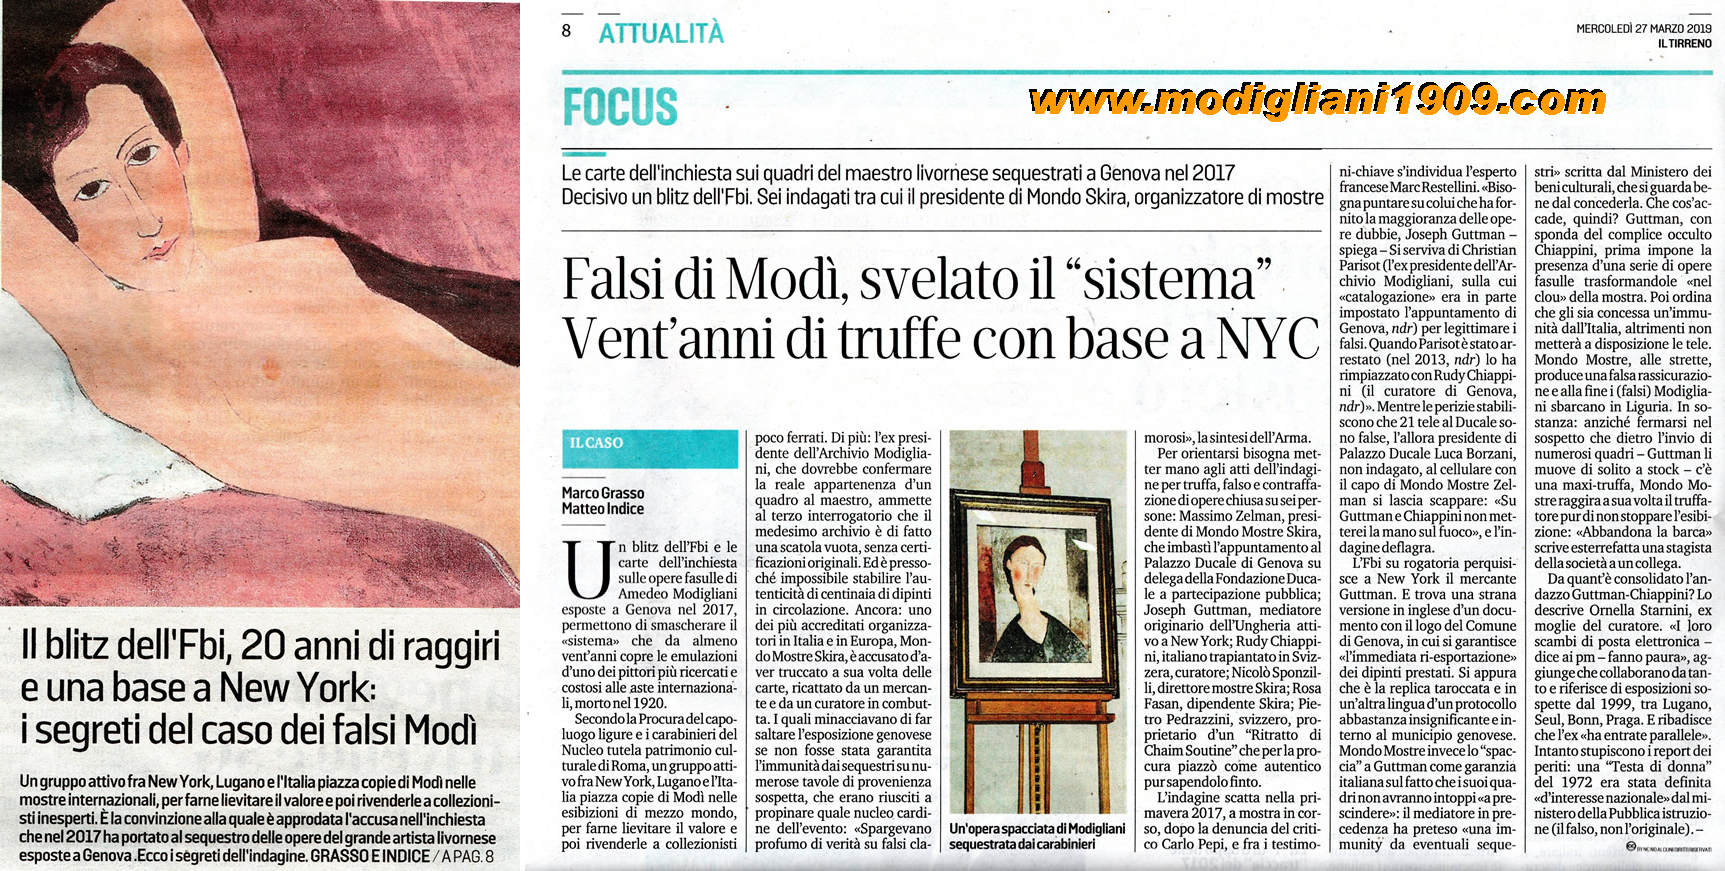 Modigliani art exhibited at Ducal Palace in Genoa revealed to be